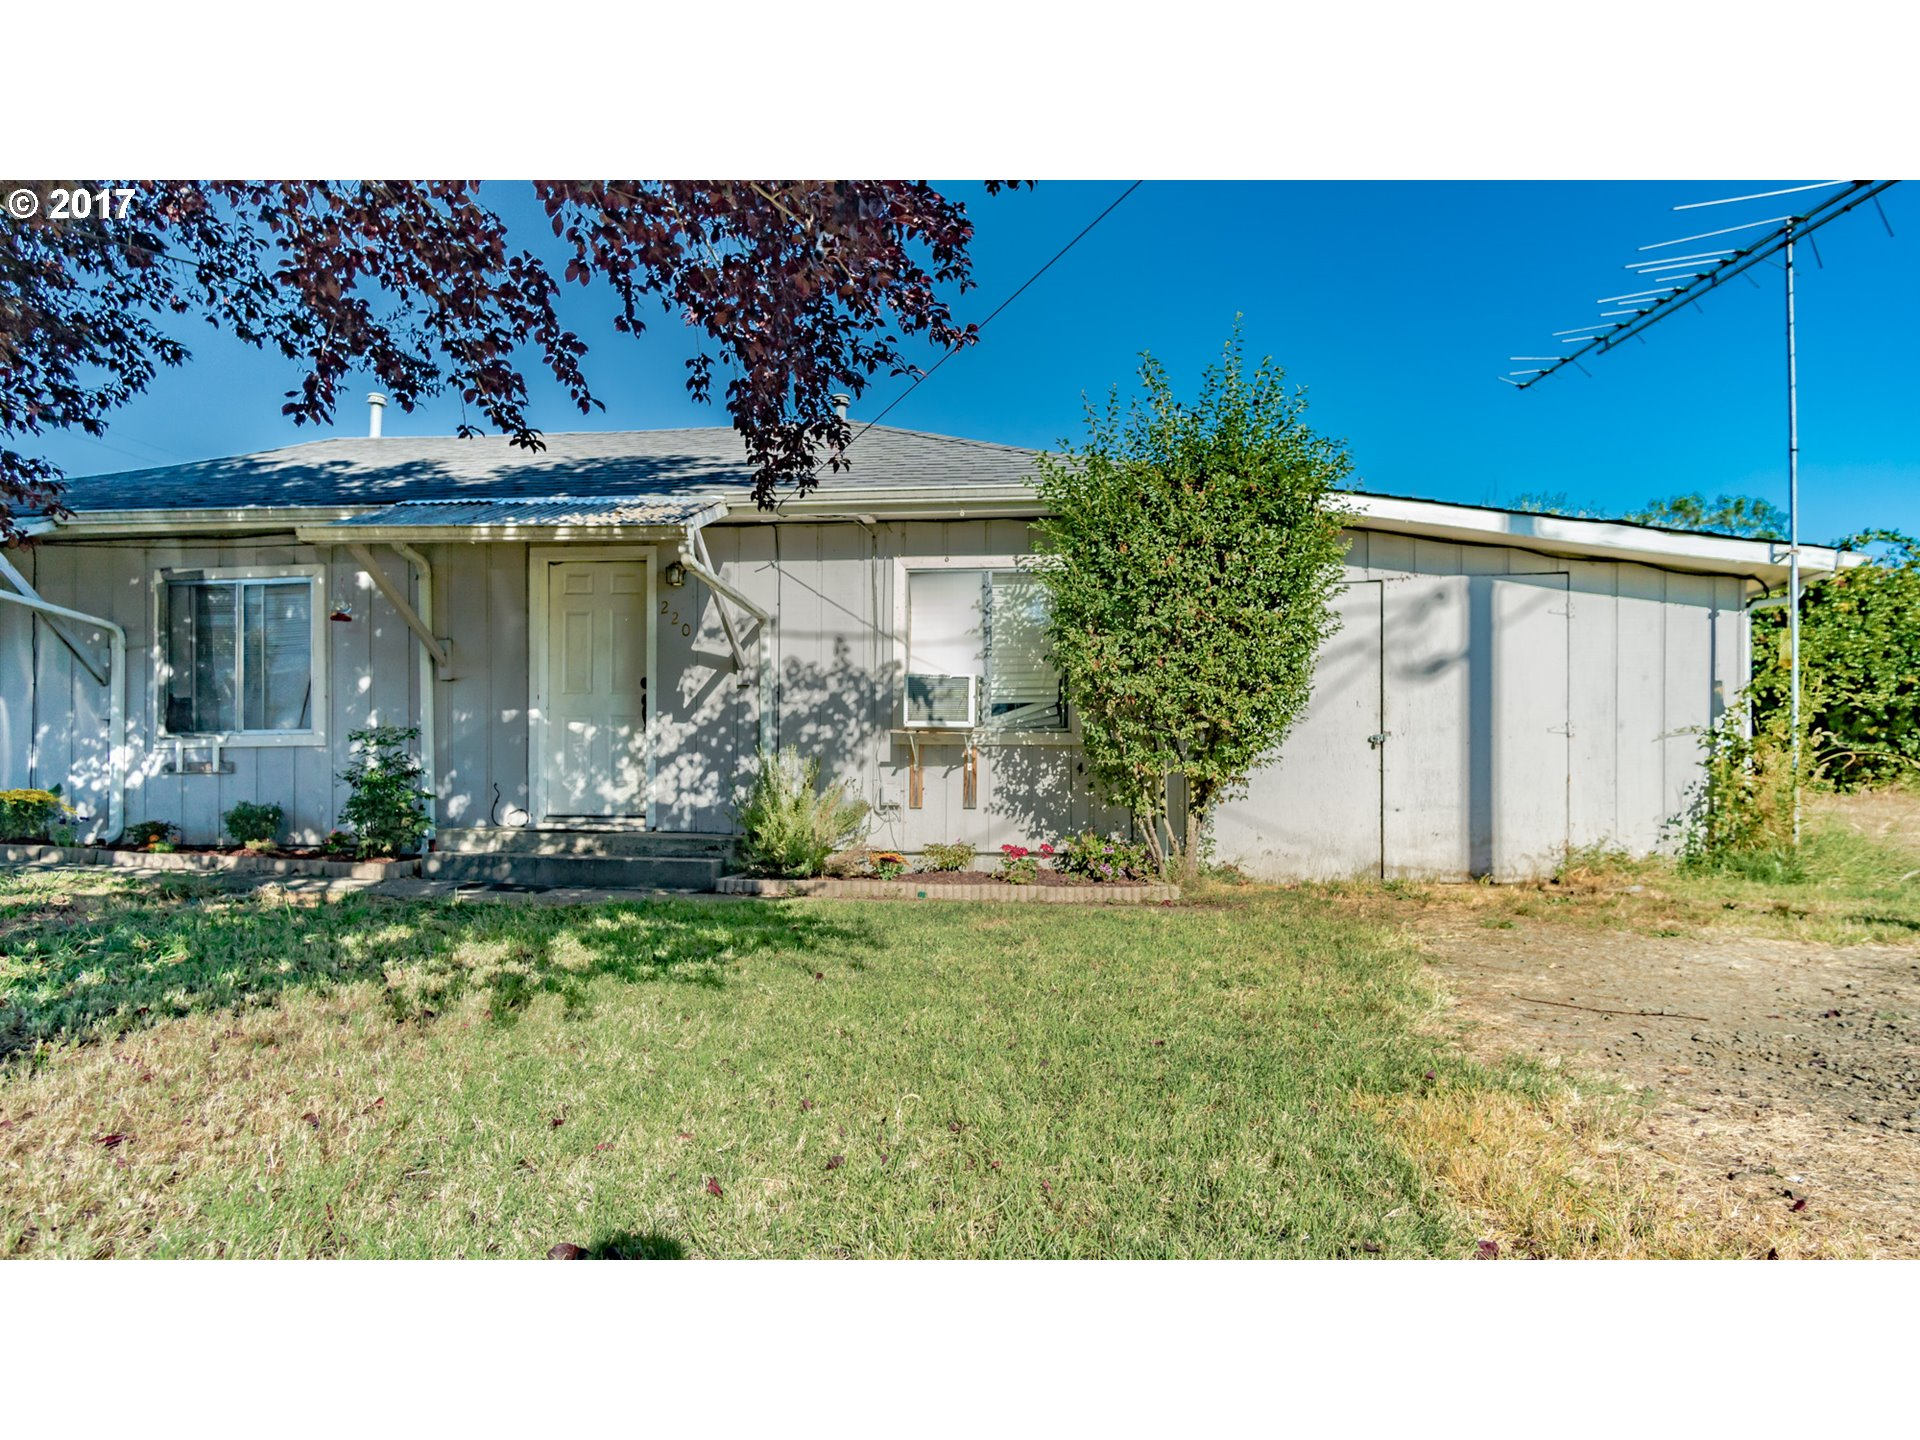 218 Nw Lost Lane Winston Or 97496 Us Roseburg Home For Sale Mary